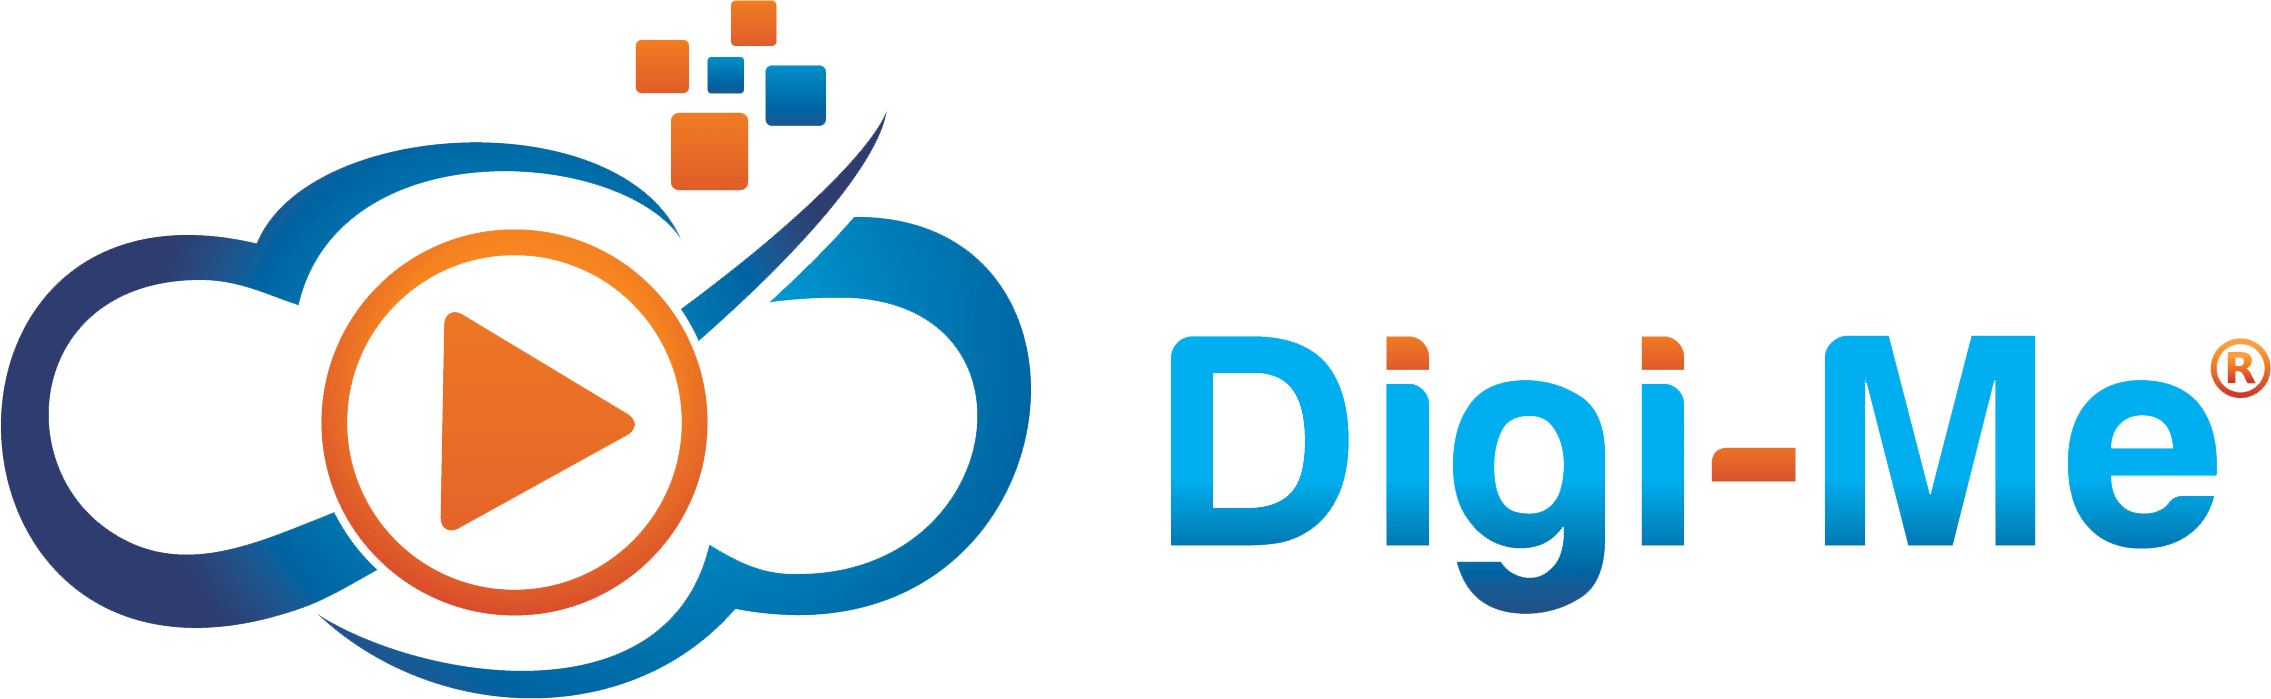 Digi-me Job Video Company Registered Logo in the Long Form